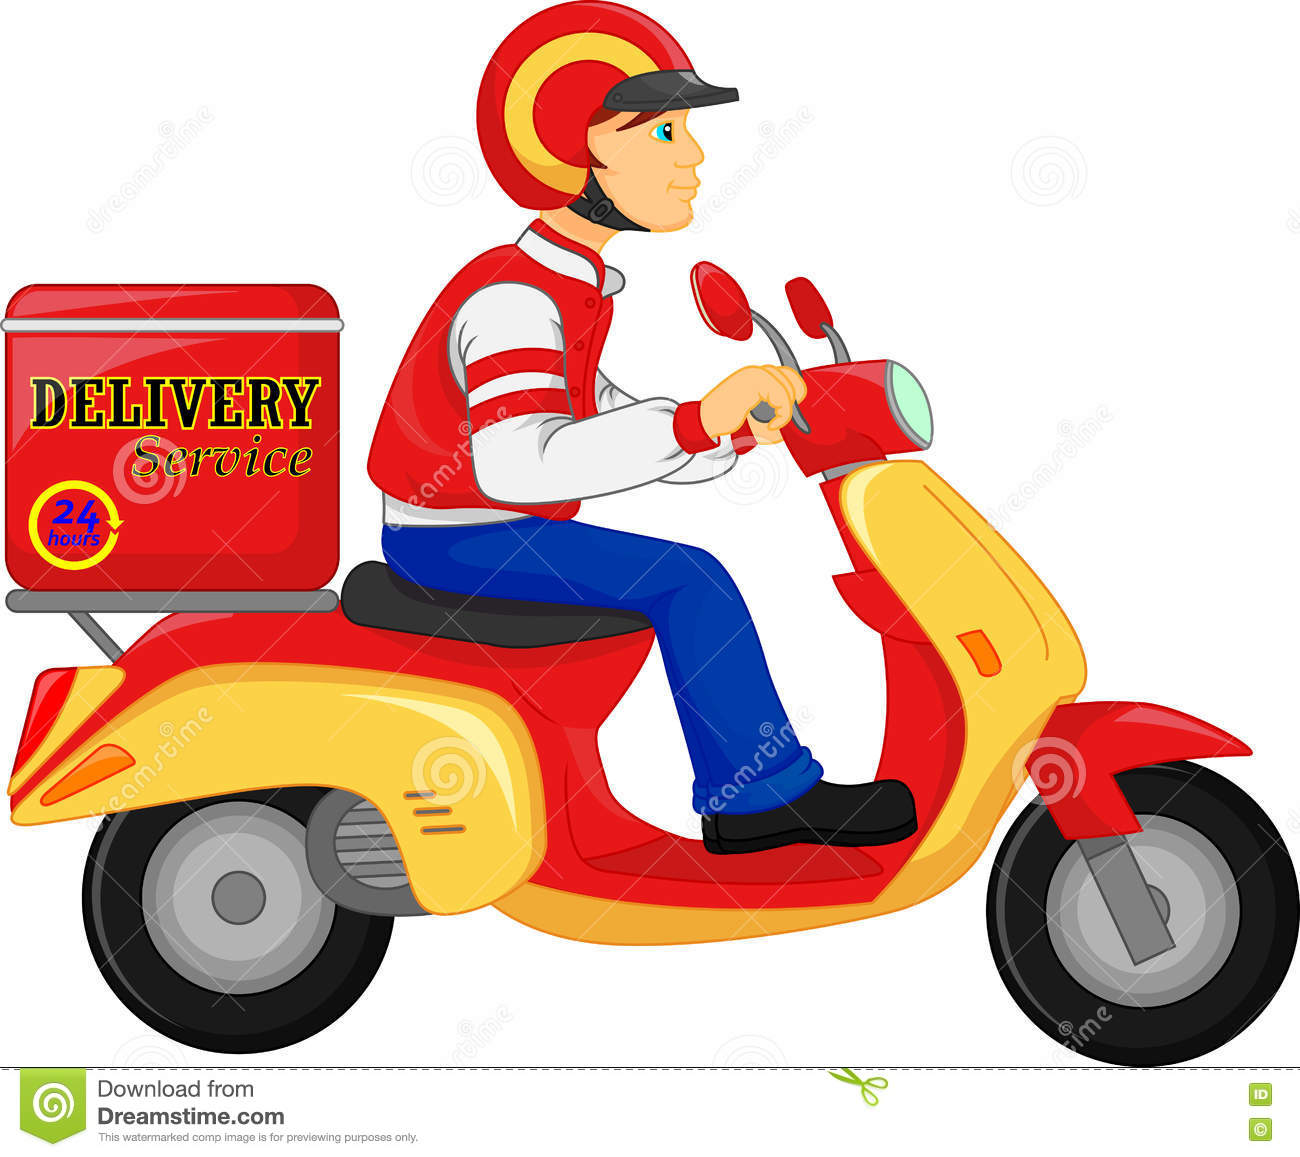 Gifi Livraison Delivery Boy Ride Scooter Motorcycle Service Order